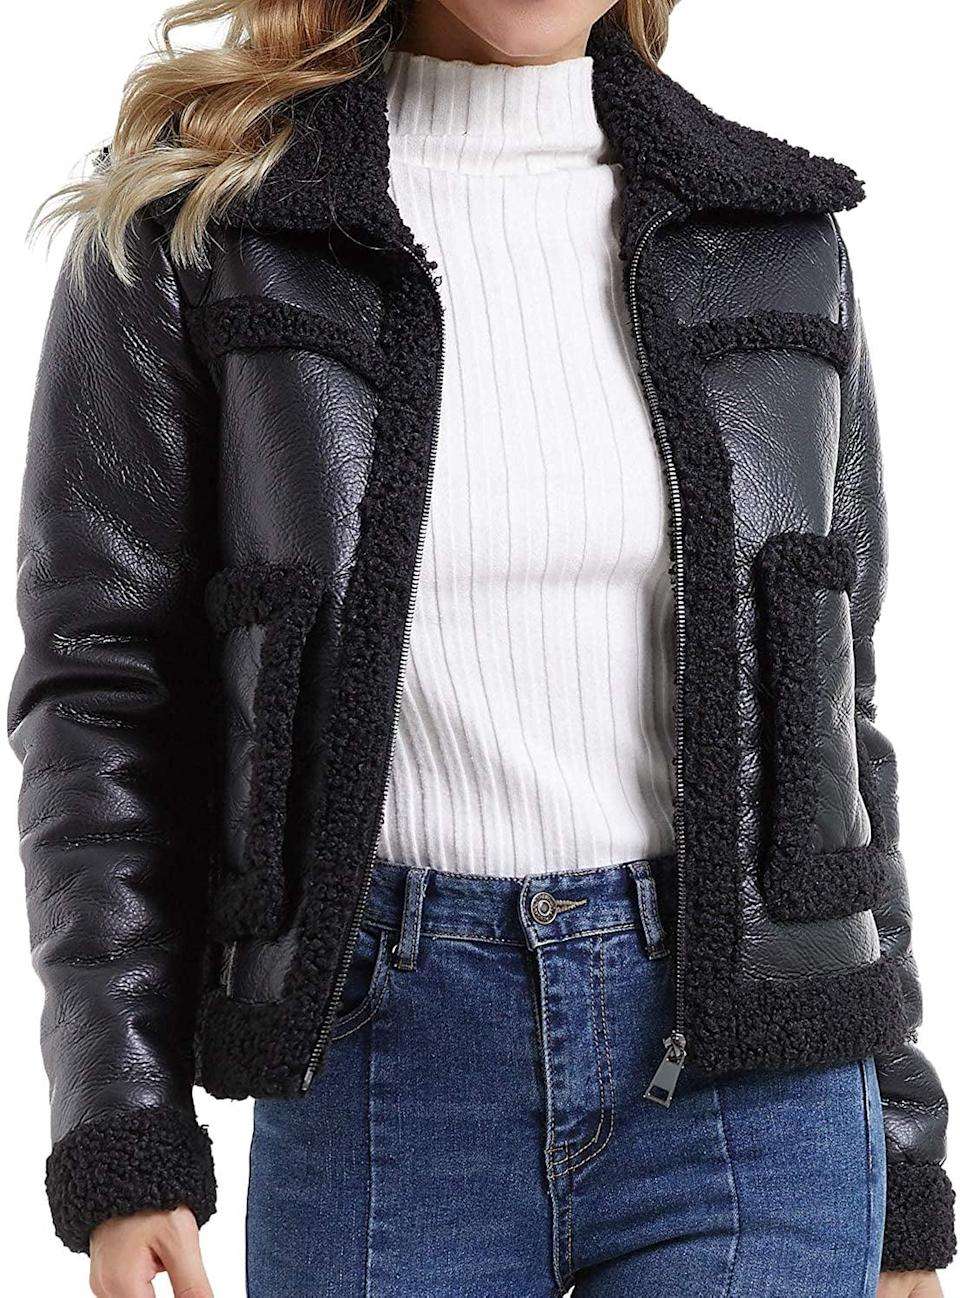 <p>This <span>Diashiny Faux Leather Jacket</span> ($37) will add a pep in your step.</p>